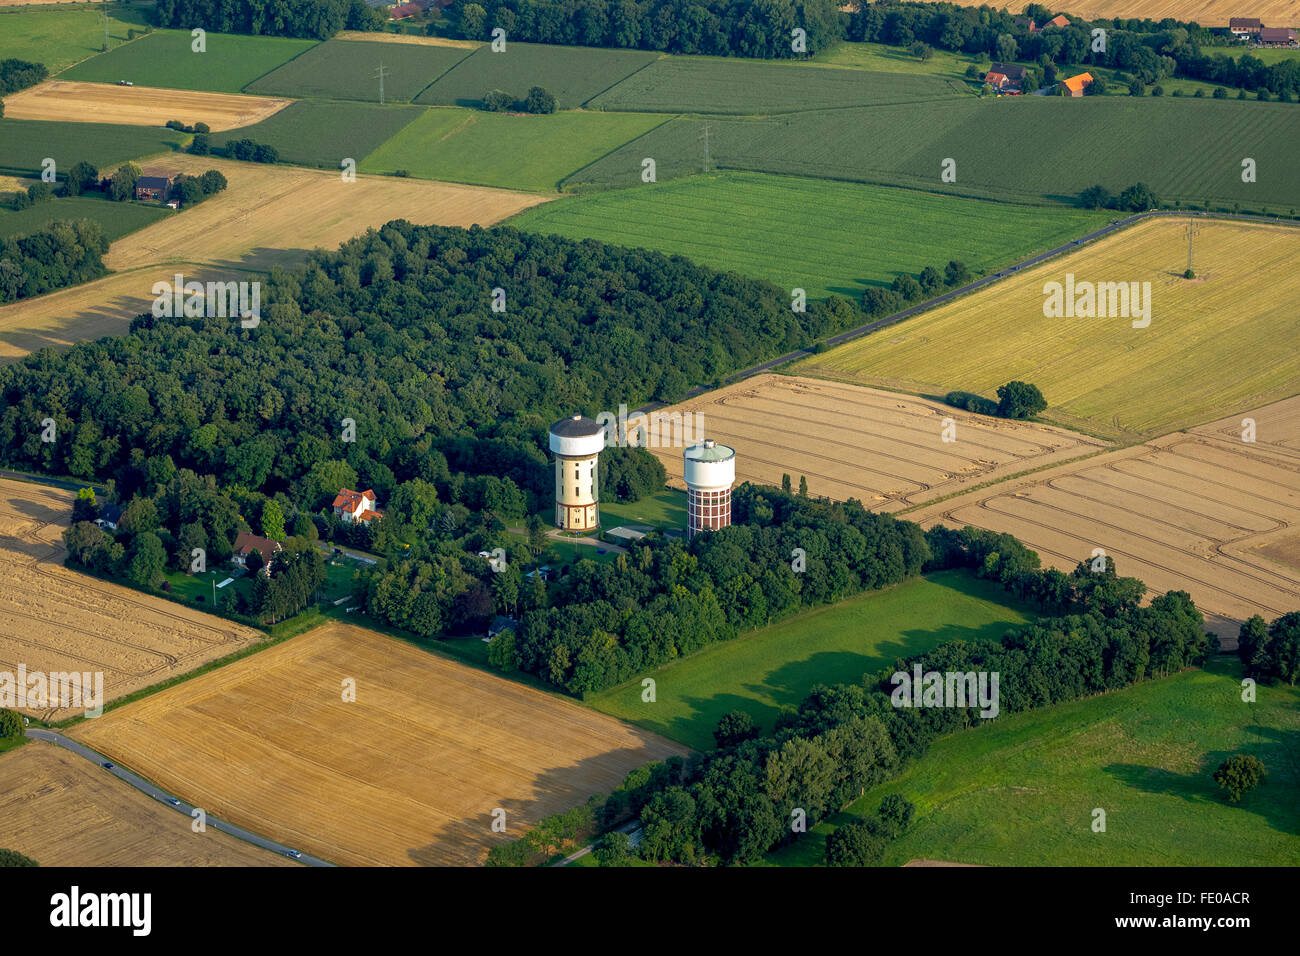 Aerial view, water towers mountains, water supply, drinking water, water infrastructure, Hamm, Ruhr, Nordrhein-Westfalen,Germany - Stock Image